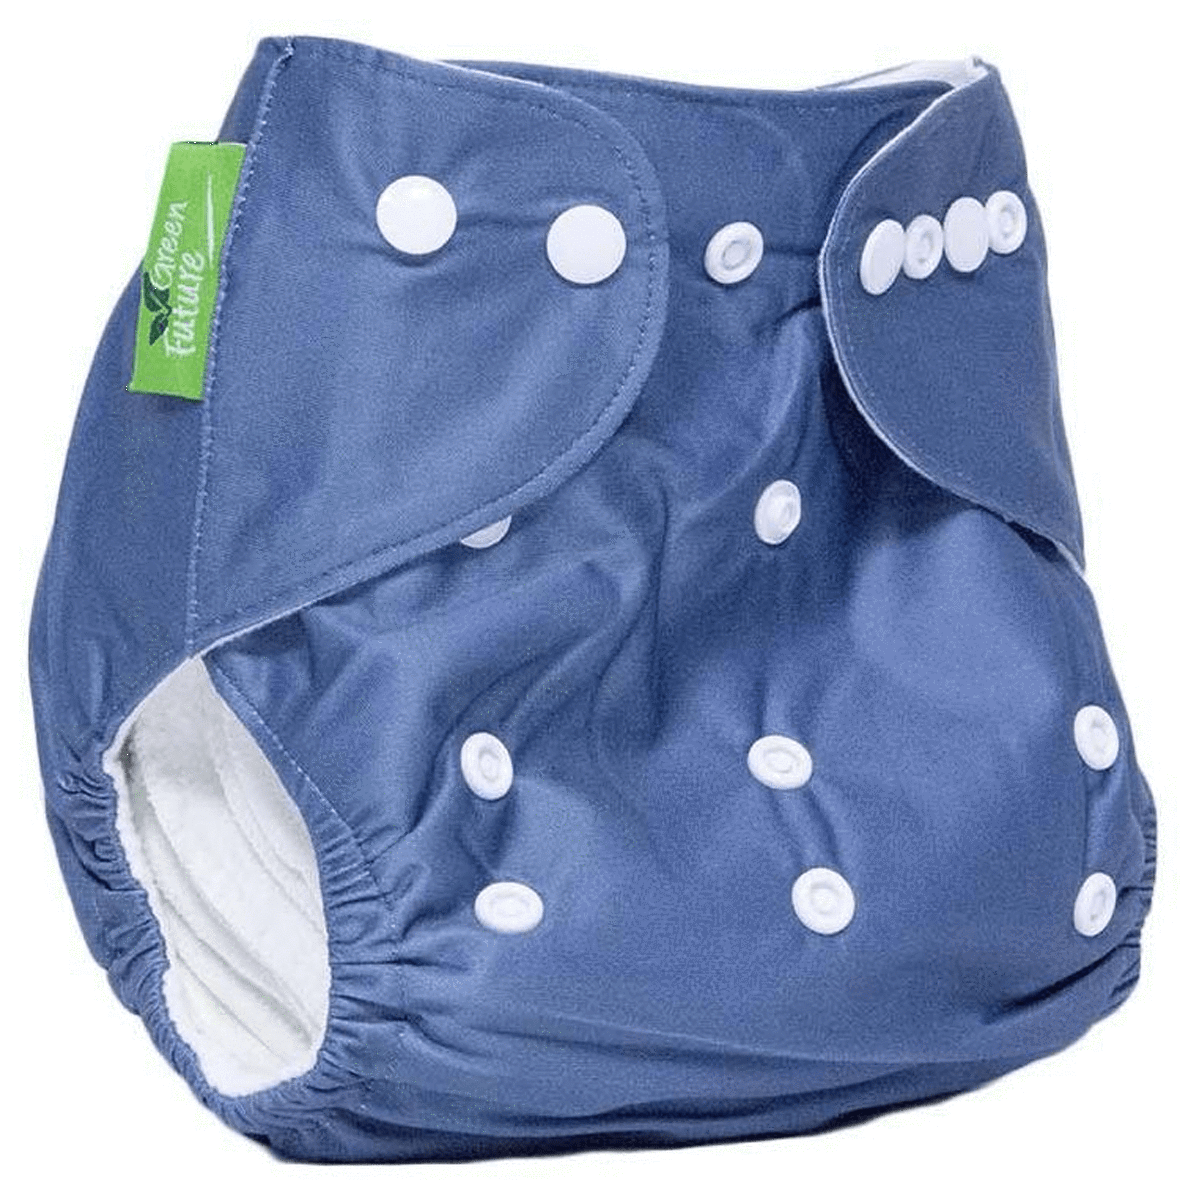 Green Future Baby Reusable & Adjustable Diaper With 2 Nappy